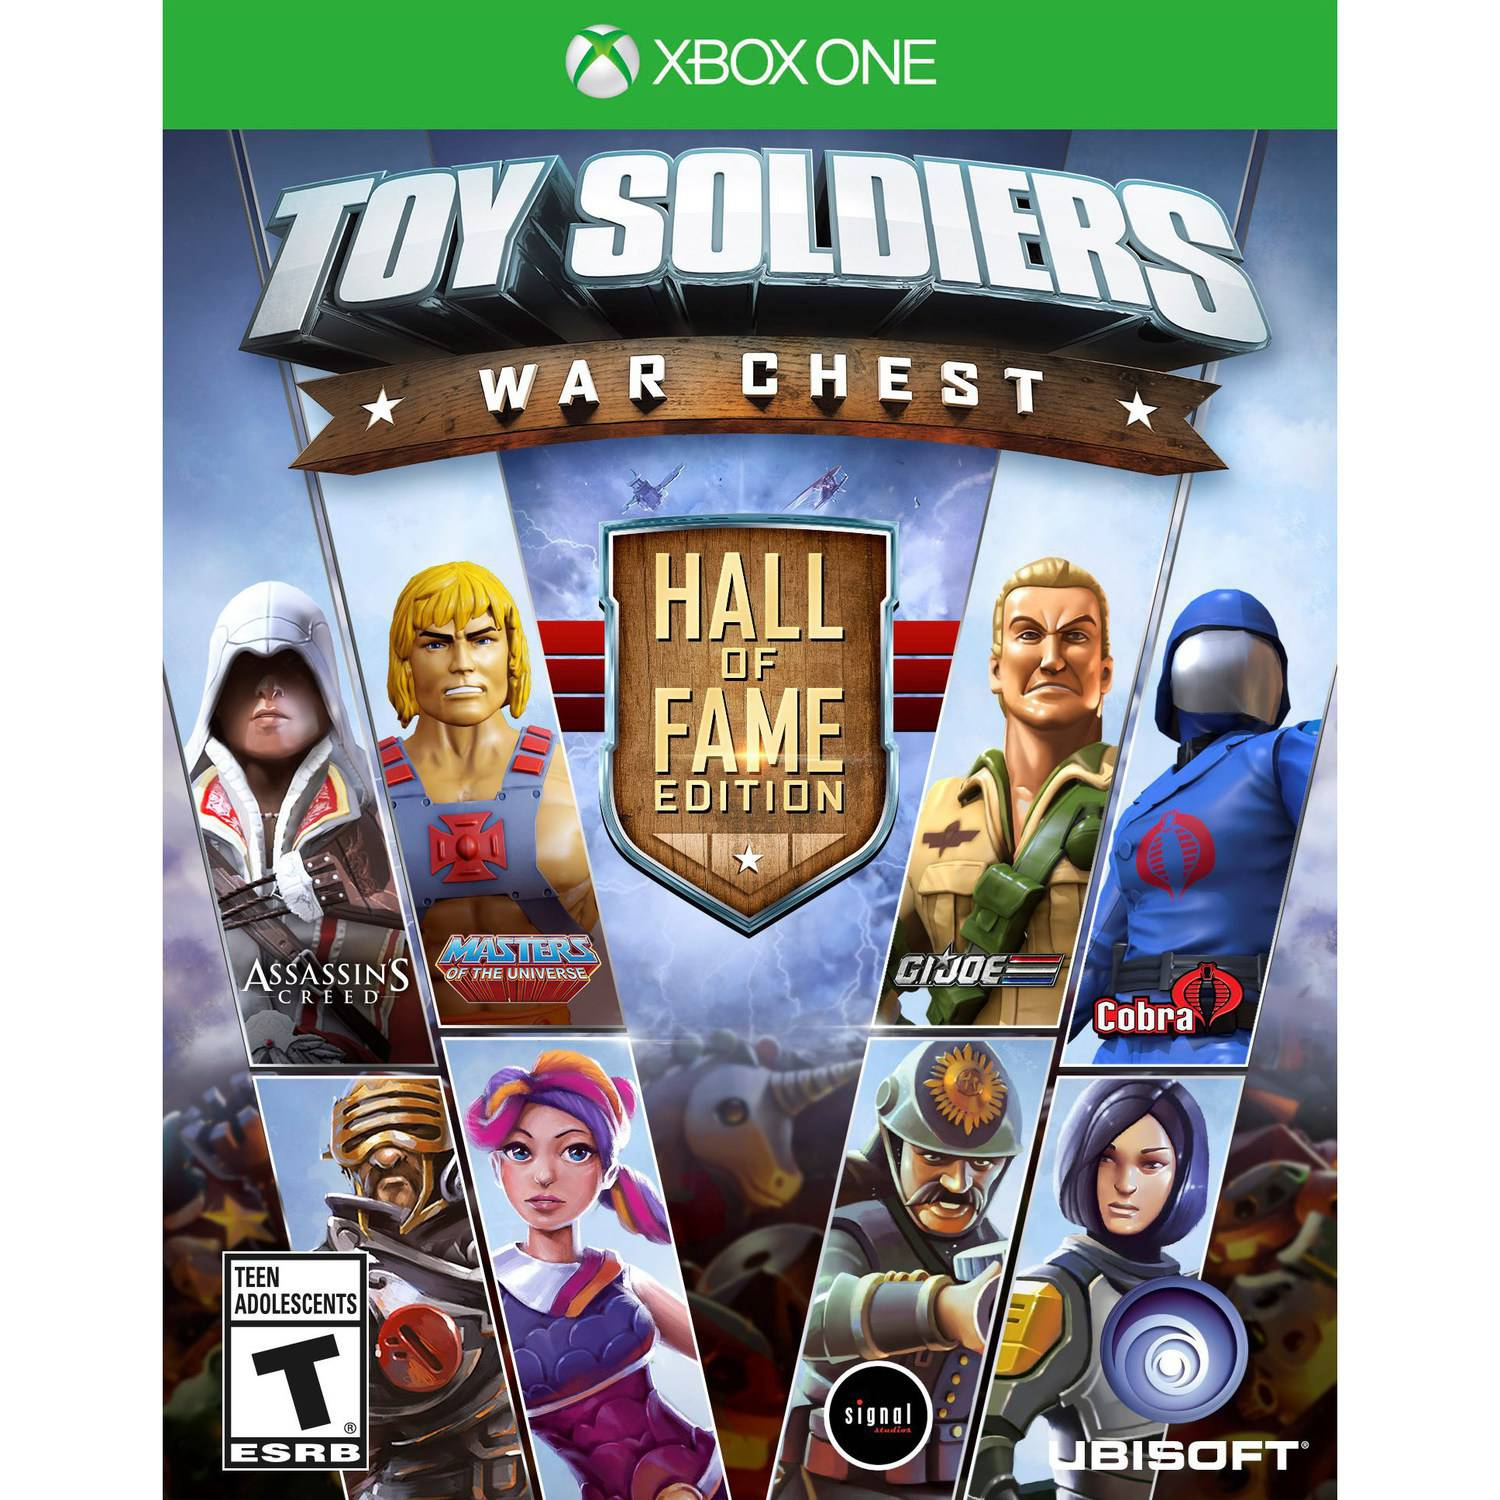 Toy Soldiers War Chest Hall of Fame Edition, Ubisoft, Xbox One, 887256001346